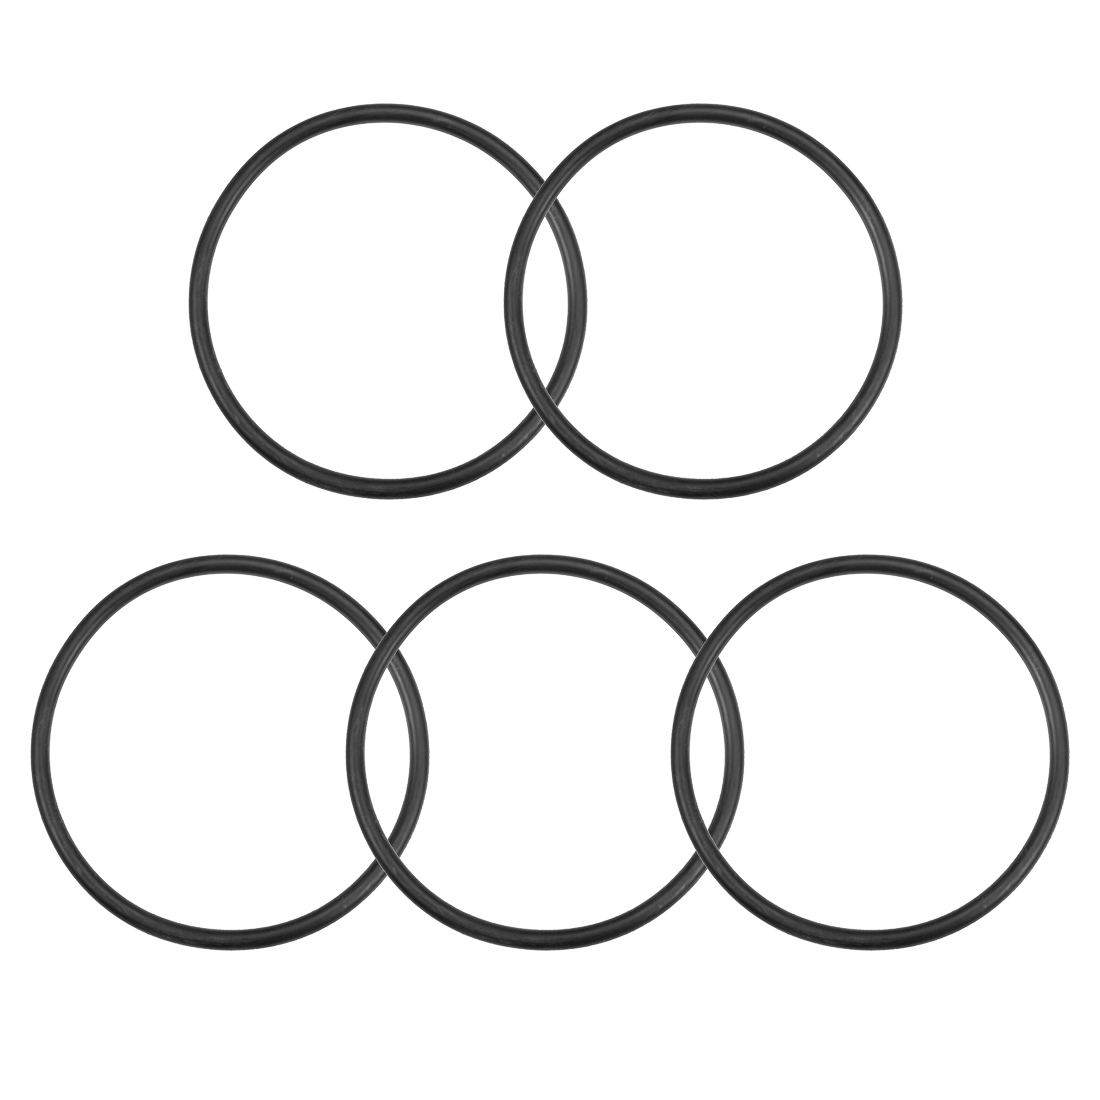 O-Rings Nitrile Rubber 103.6mm x 115mm x 5.7mm Round Seal Gasket 5 Pcs